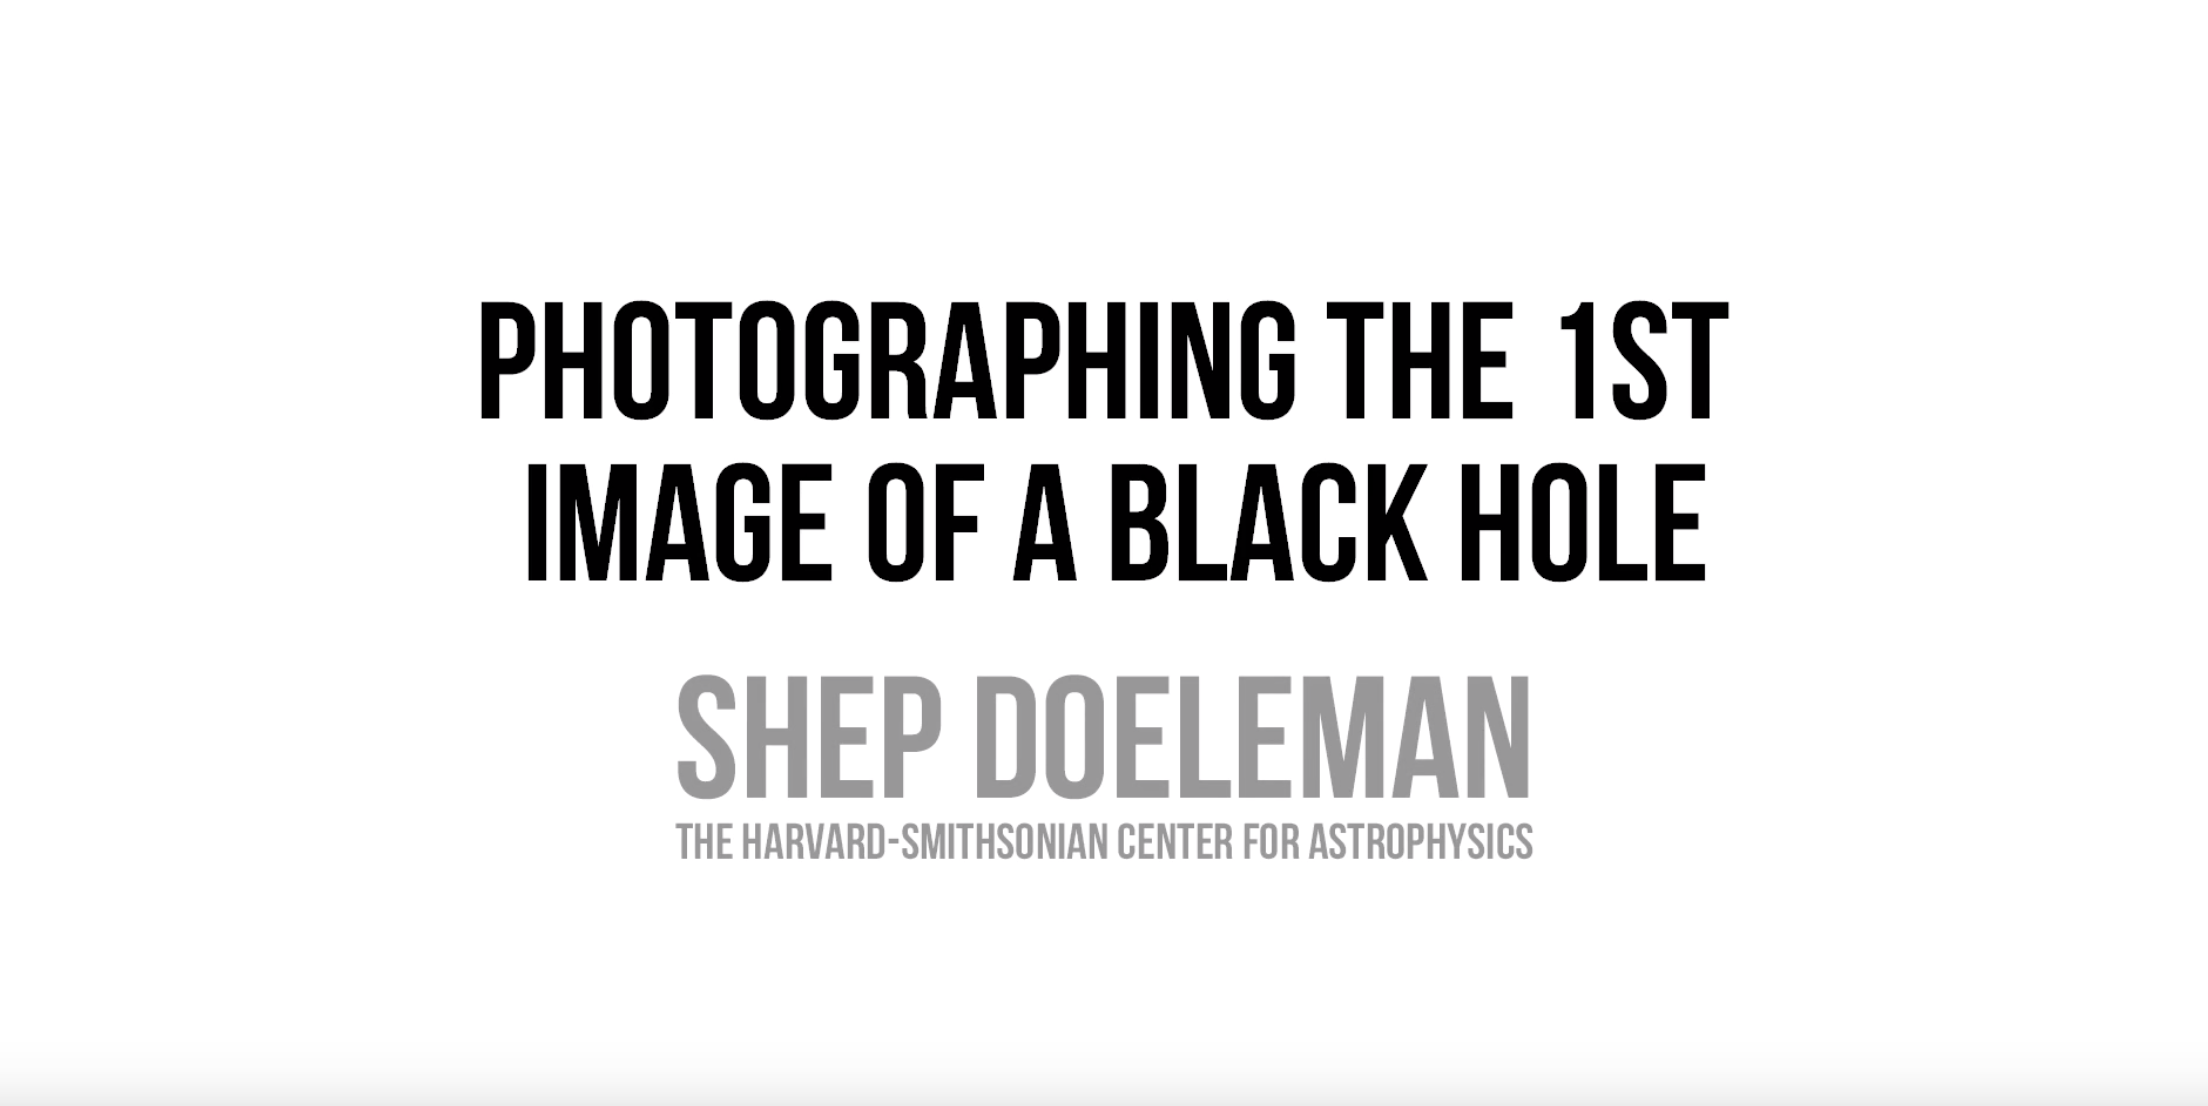 Photographing the First Black Hole: An Interview of Shep Doeleman by Jessica Lessin